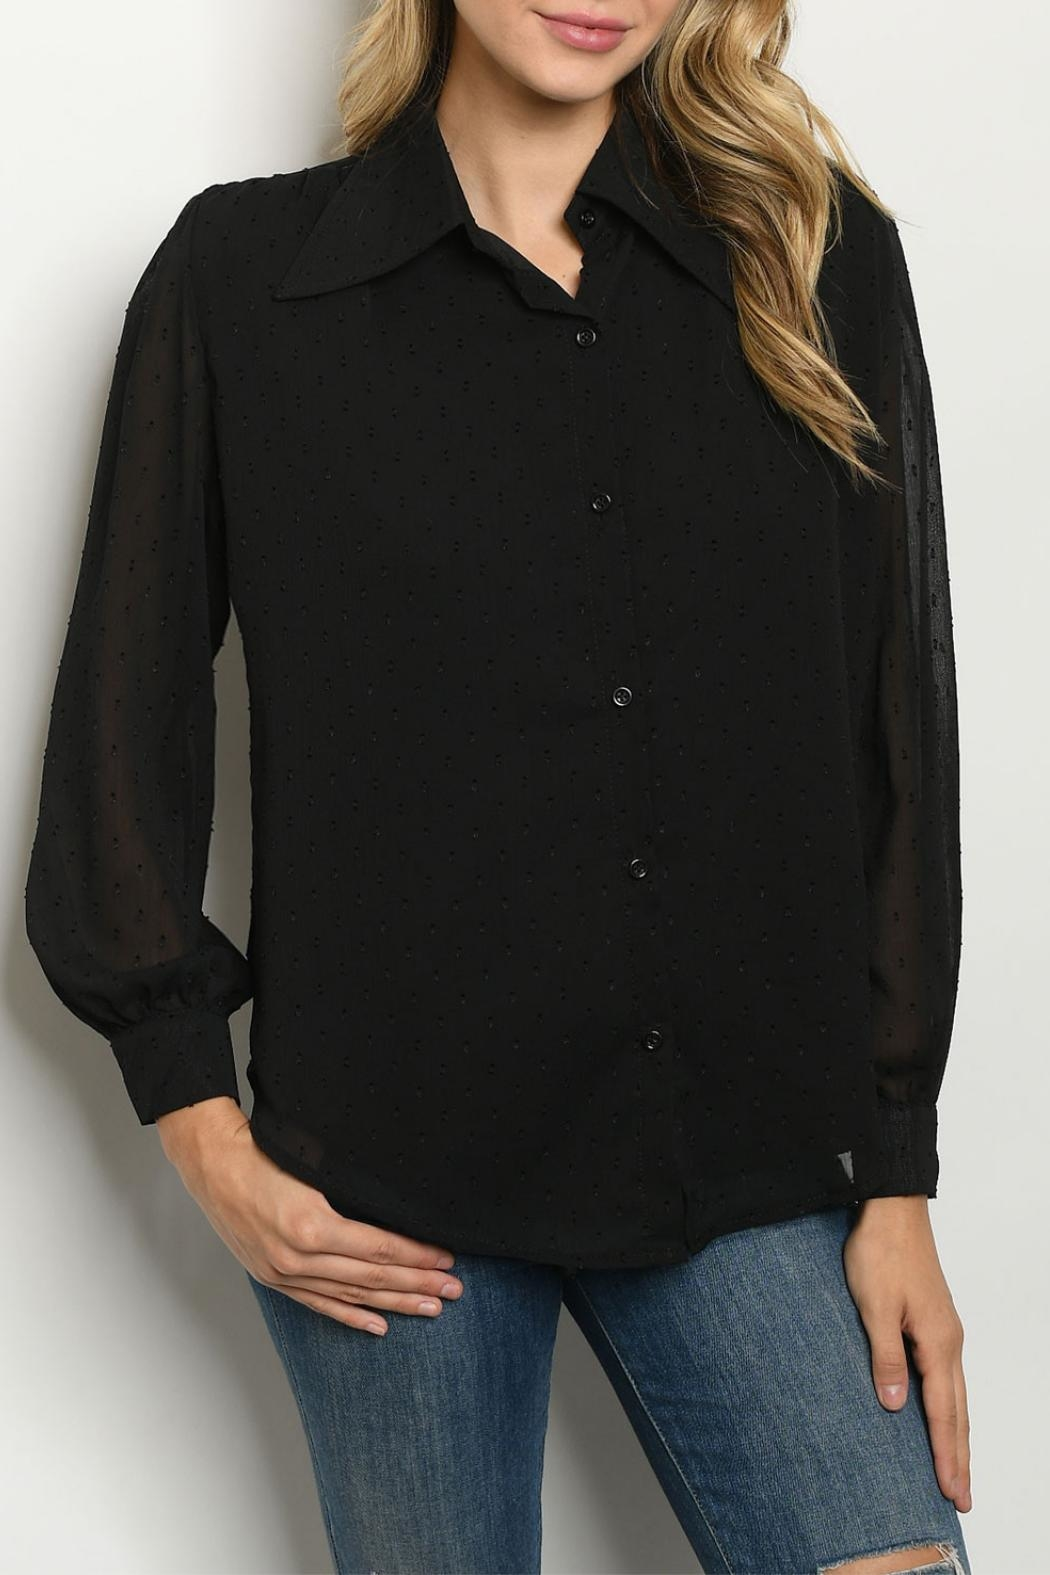 Love Encounter Black Sheer-Overlay Blouse - Front Cropped Image